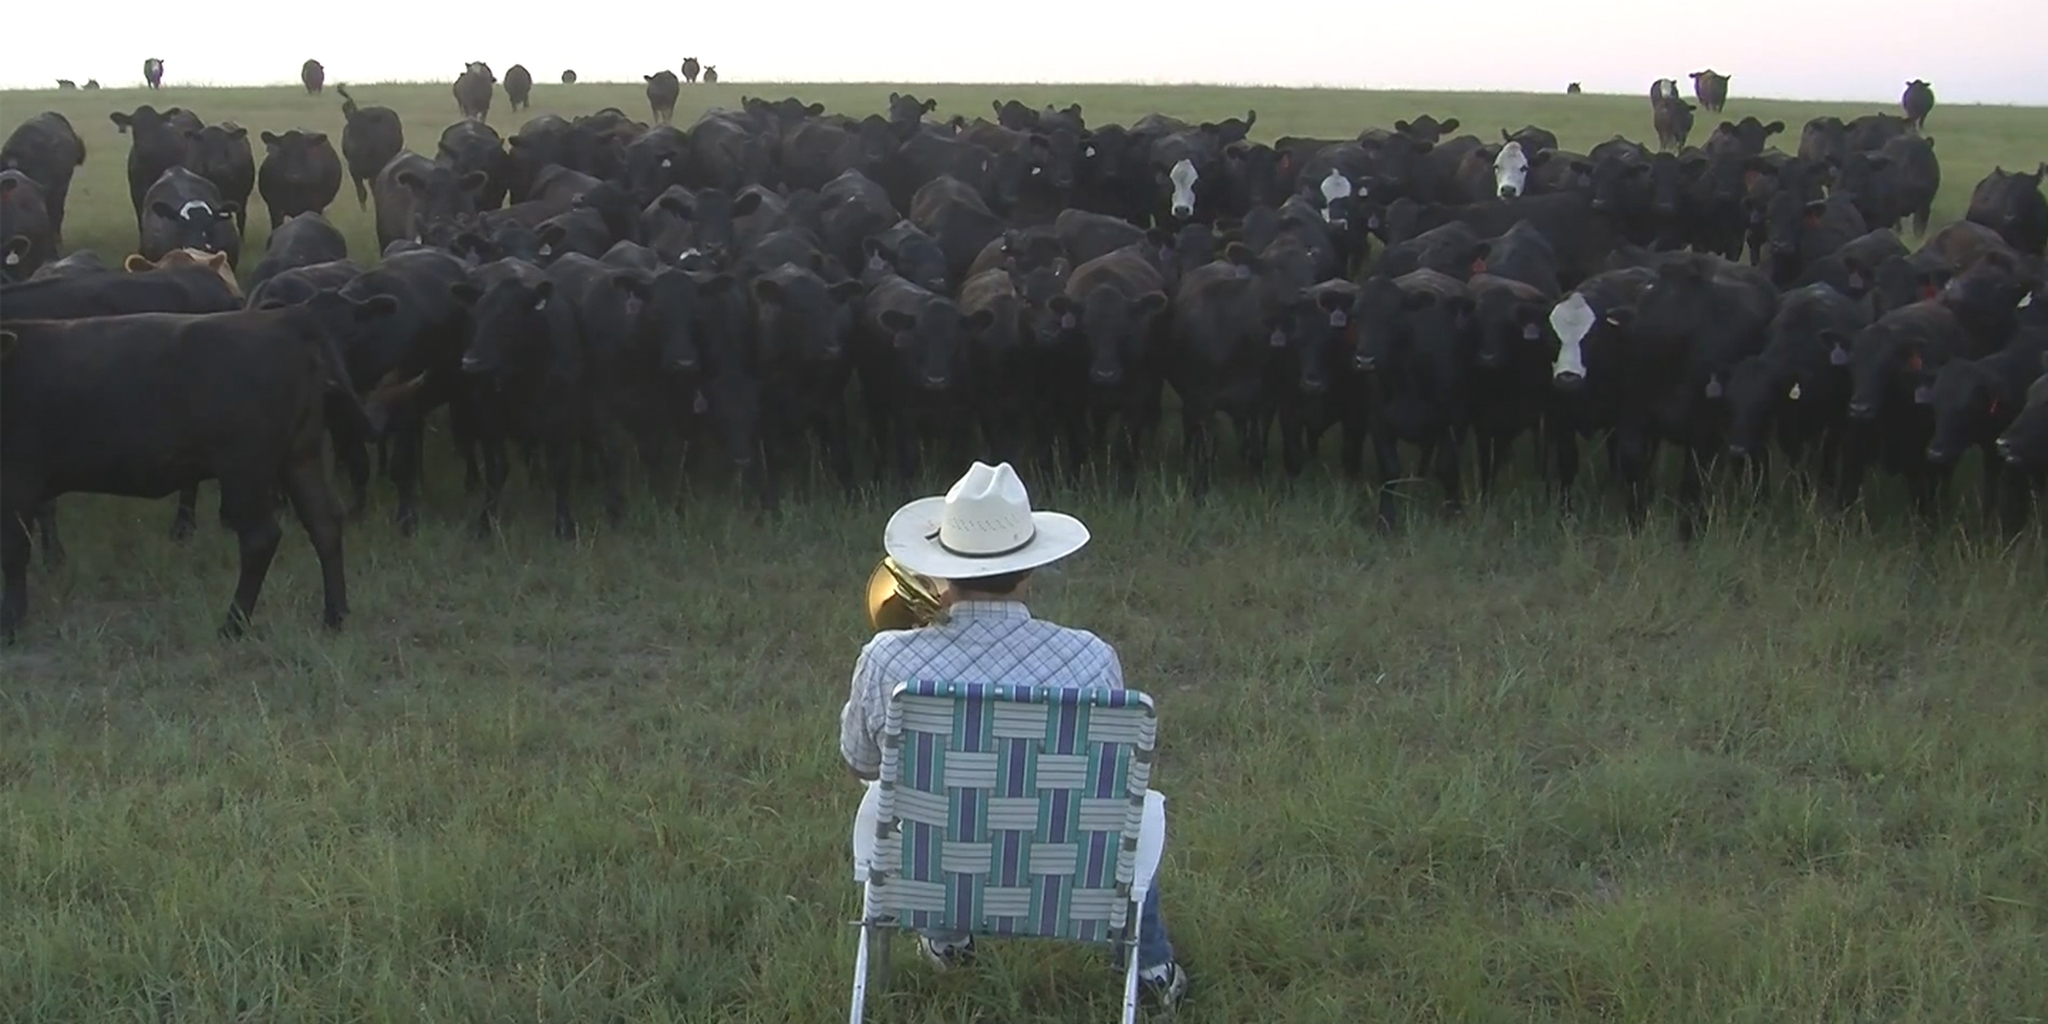 farmer playing royals to cows